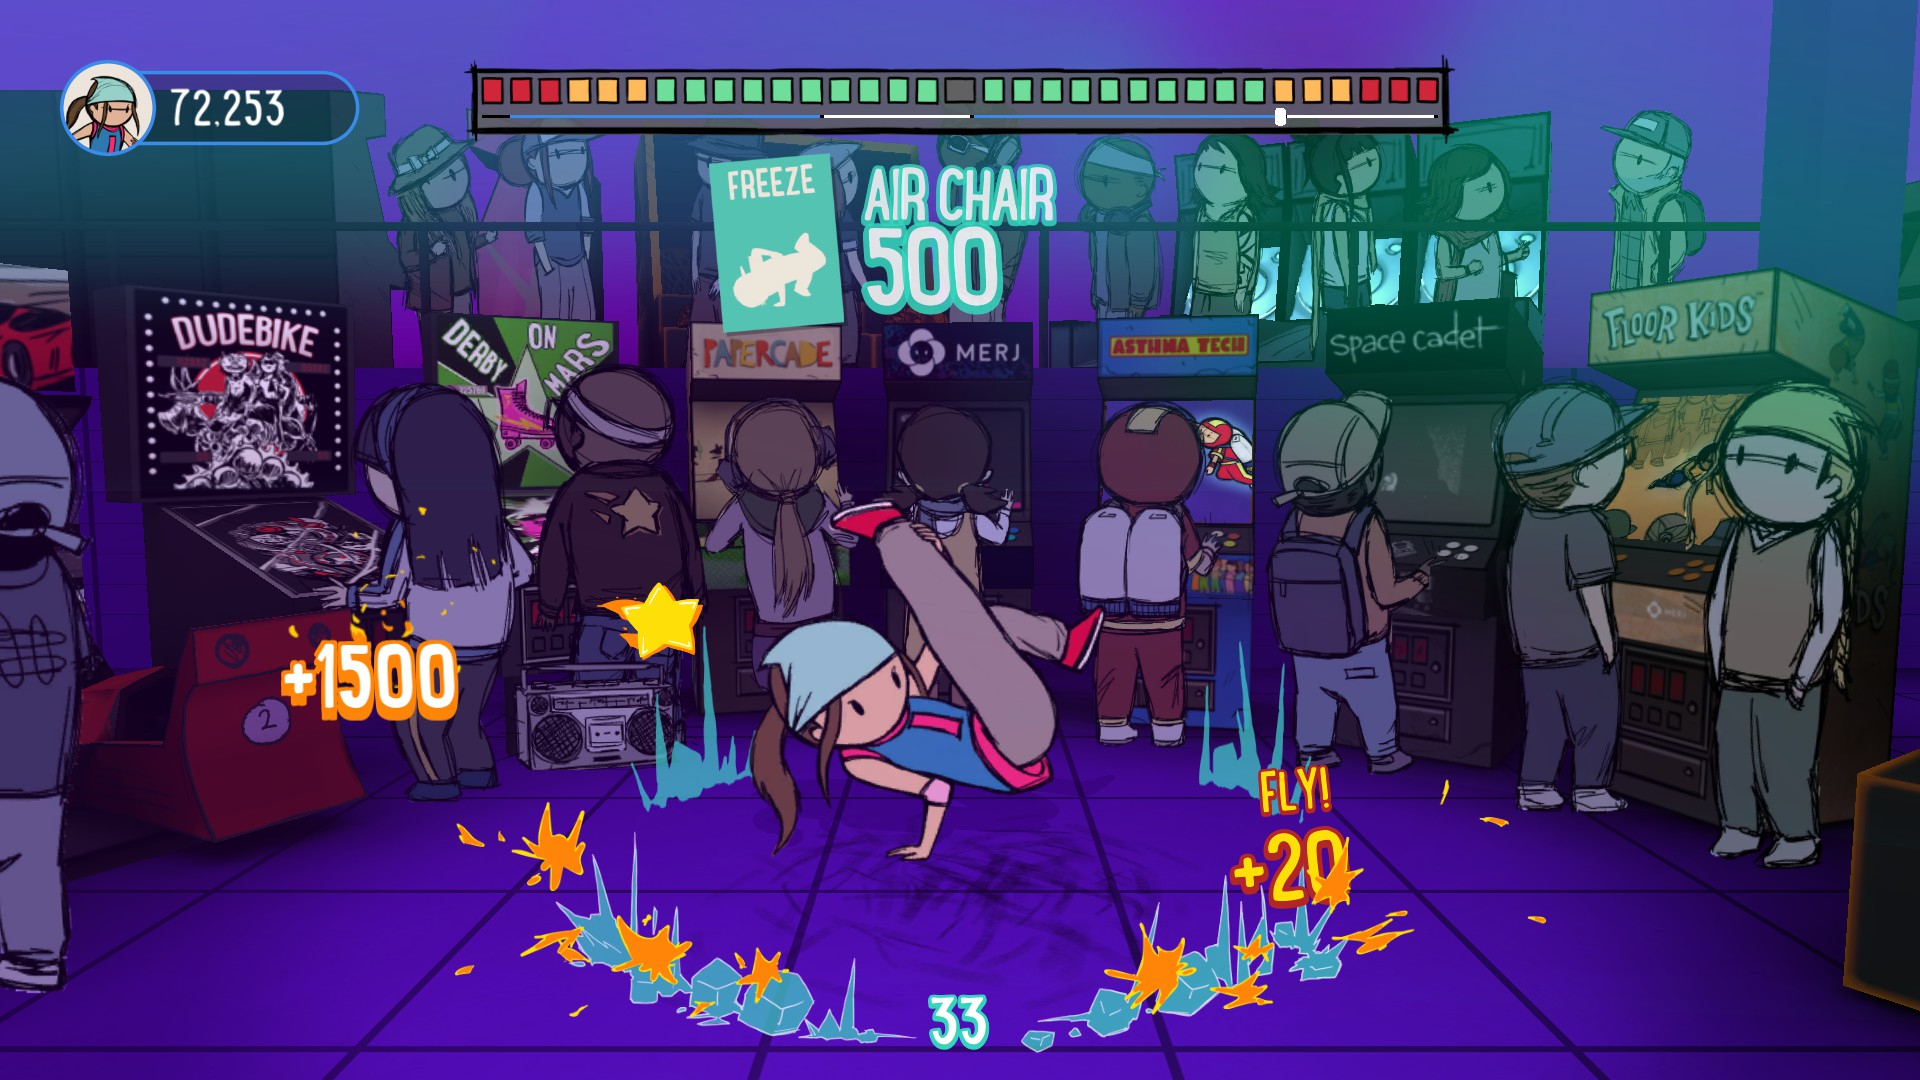 Scribbles kicks it in the arcade, where fans can play Floor Kids in a video game inception scenario. Although personally I'd like to try Asthma Tech or Dudebike.